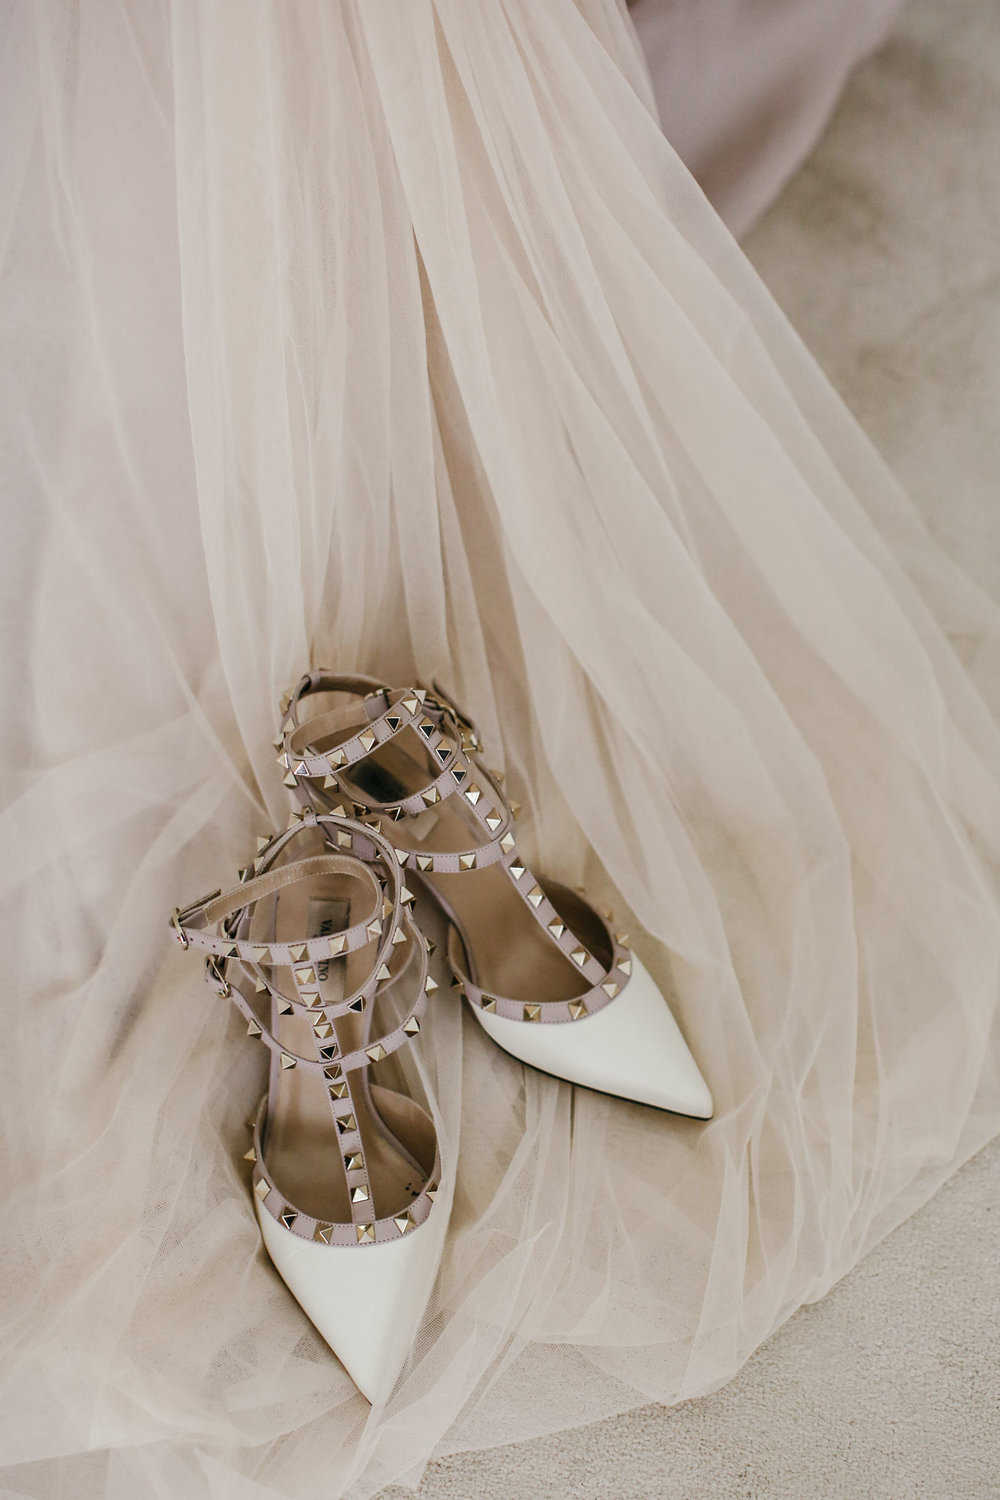 The Brides Shoes (Valentino) and Gown (Moira Hughes Couture)